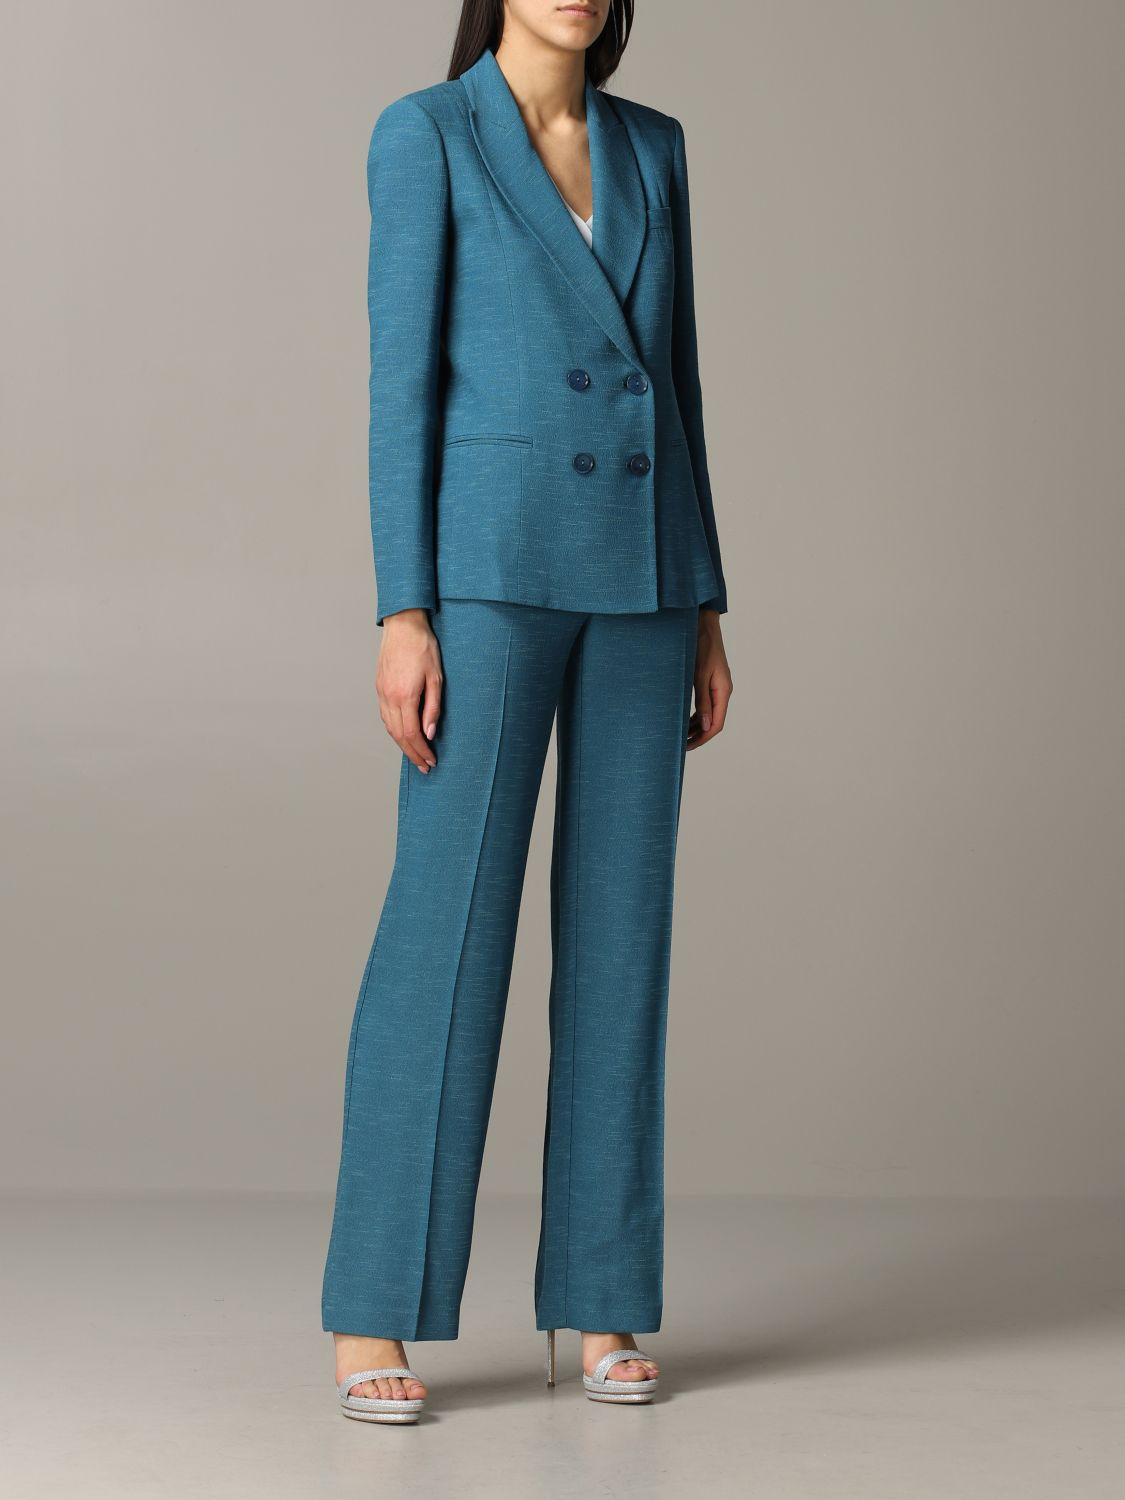 Patrizia Pepe double-breasted jacket teal 2